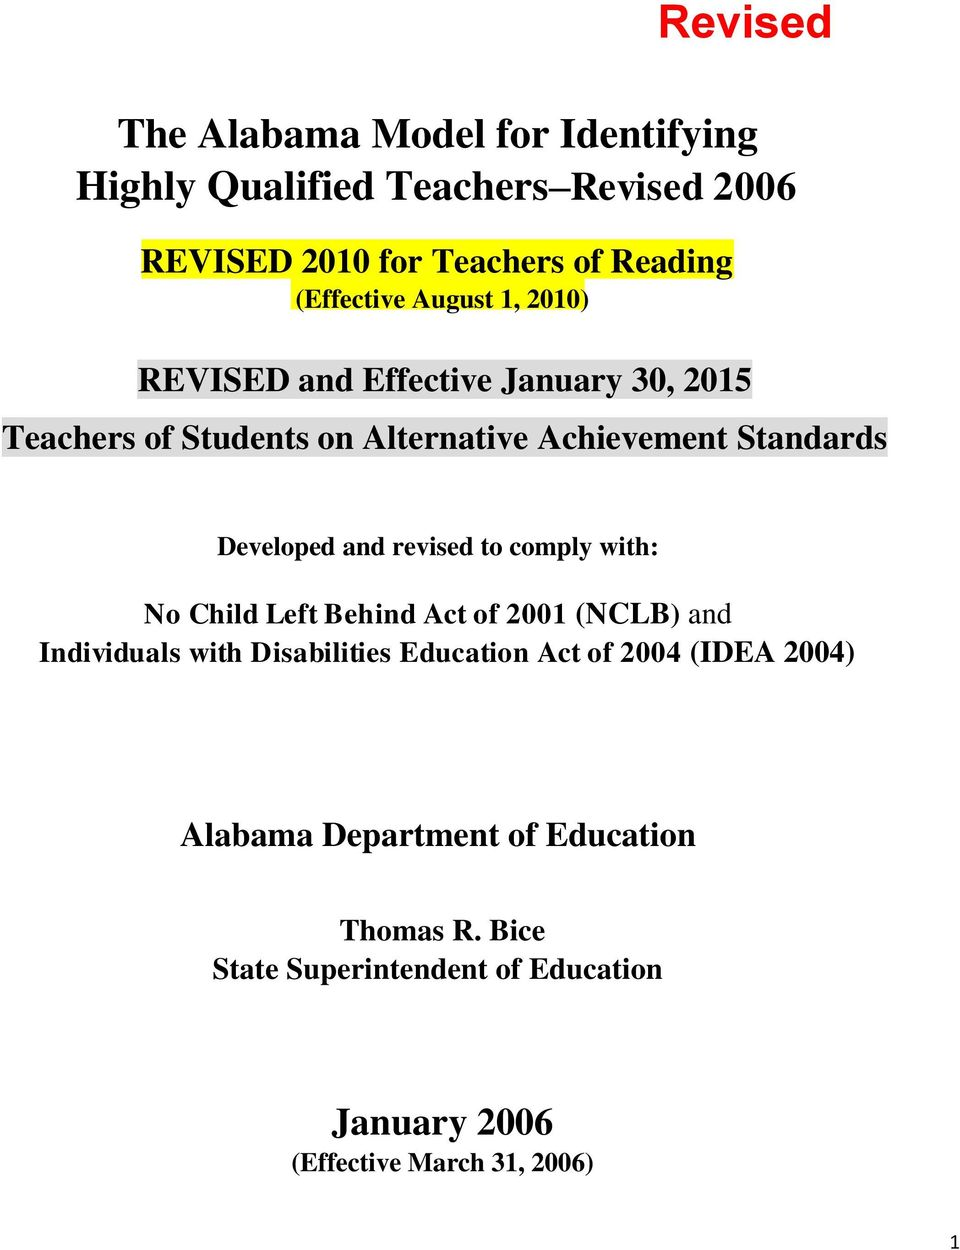 Developed and revised to comply with: No Child Left Behind Act of 2001 (NCLB) and Individuals with Disabilities Education Act